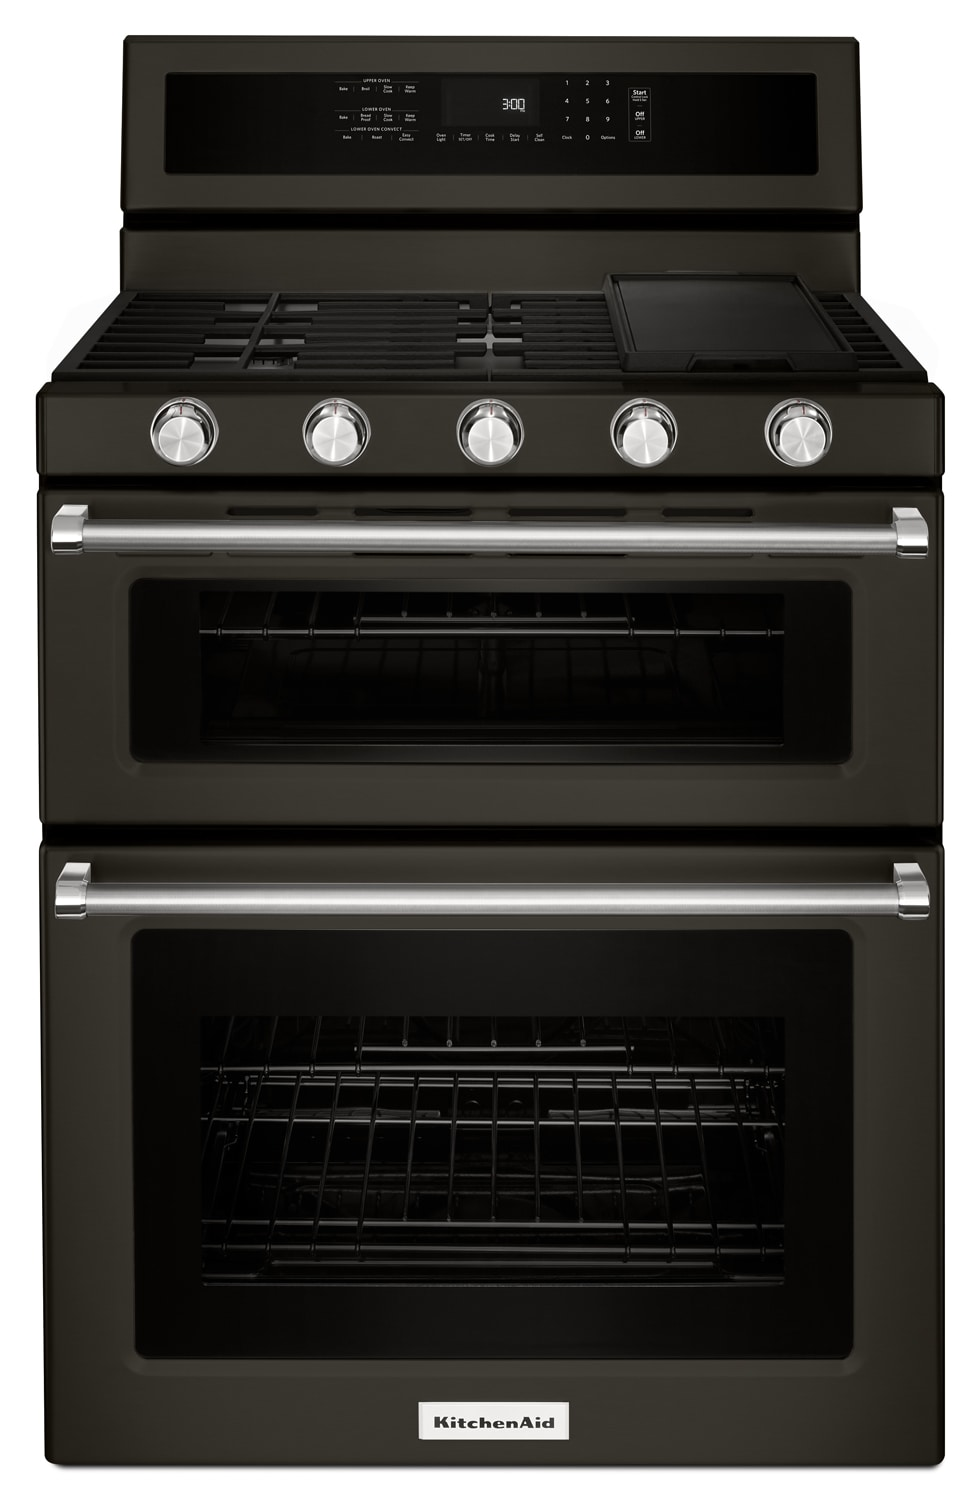 KitchenAid 6.0 Cu. Ft. Double Oven Freestanding Gas Convection Range – KFGD500EBS